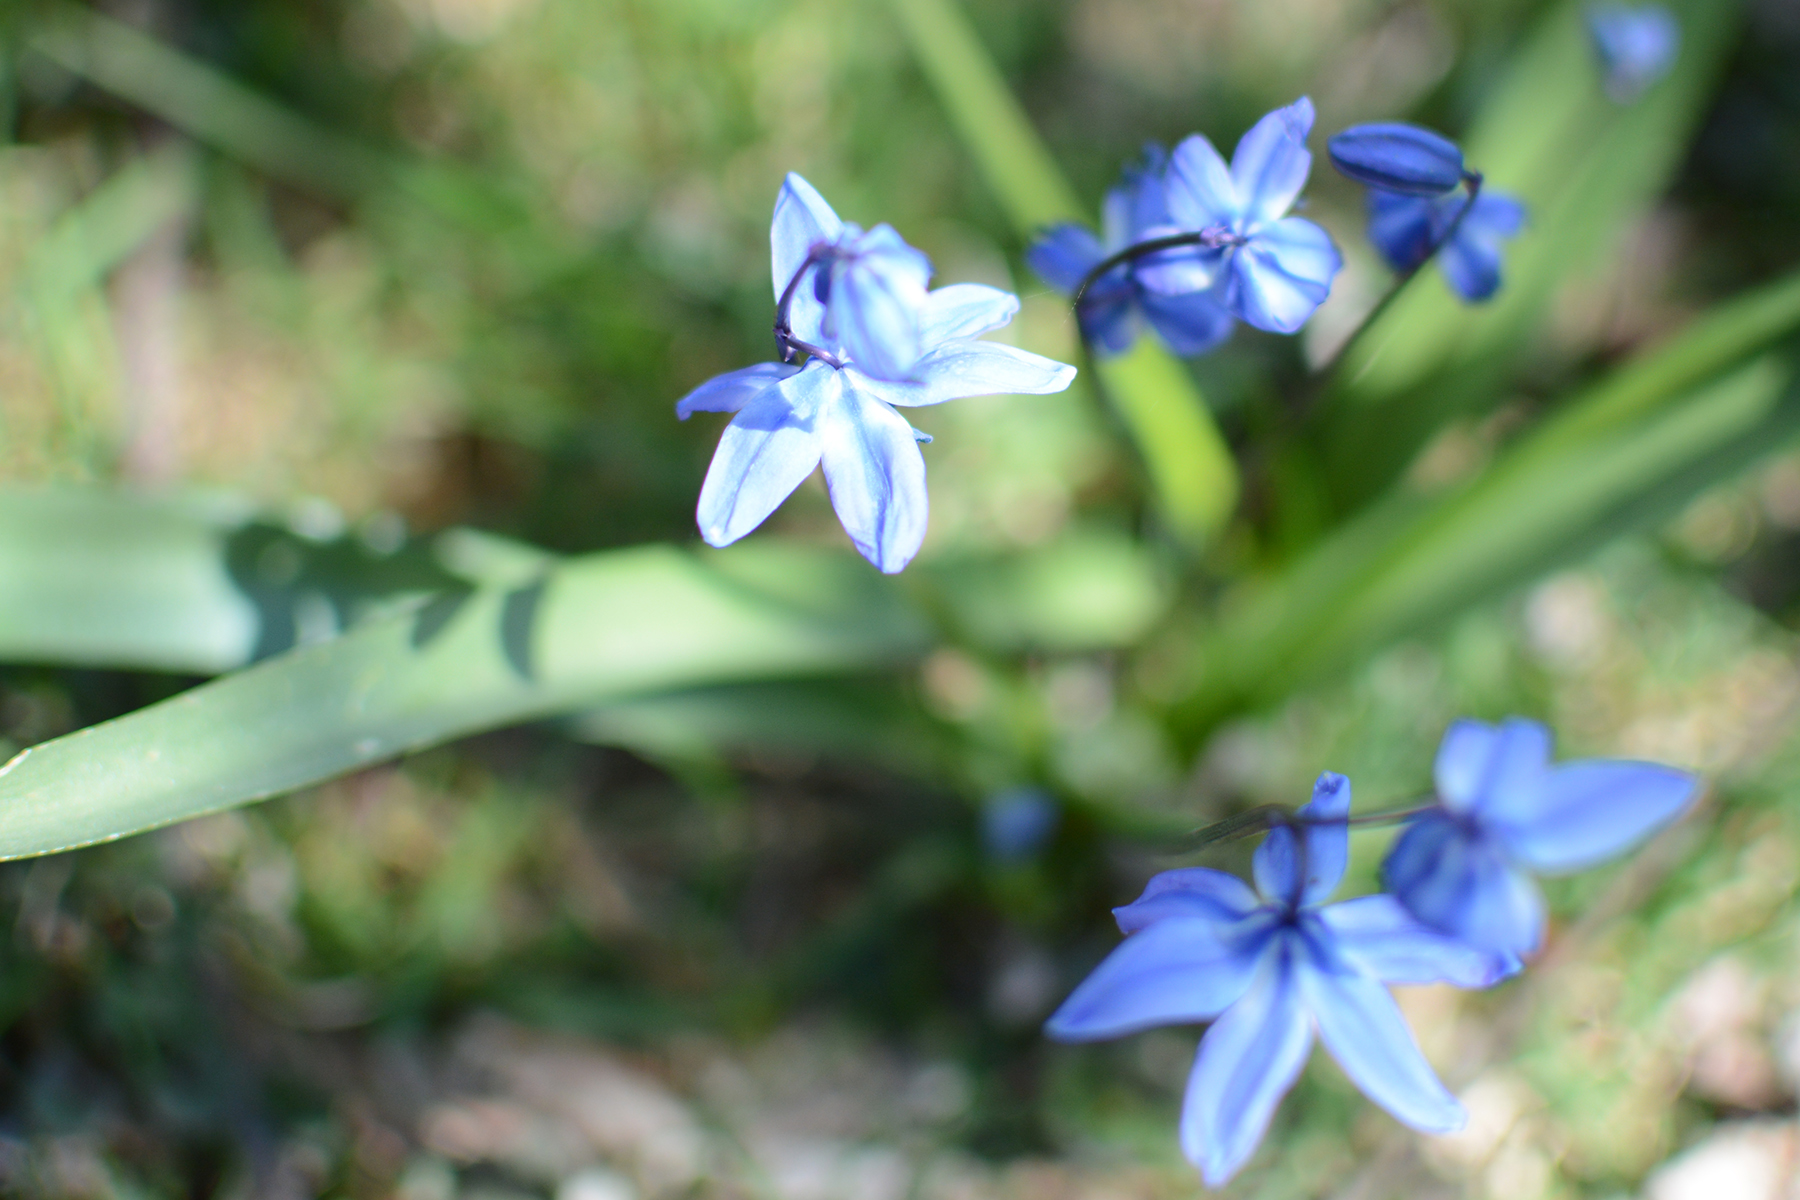 2016-04-17_backyard-flower-bluebell